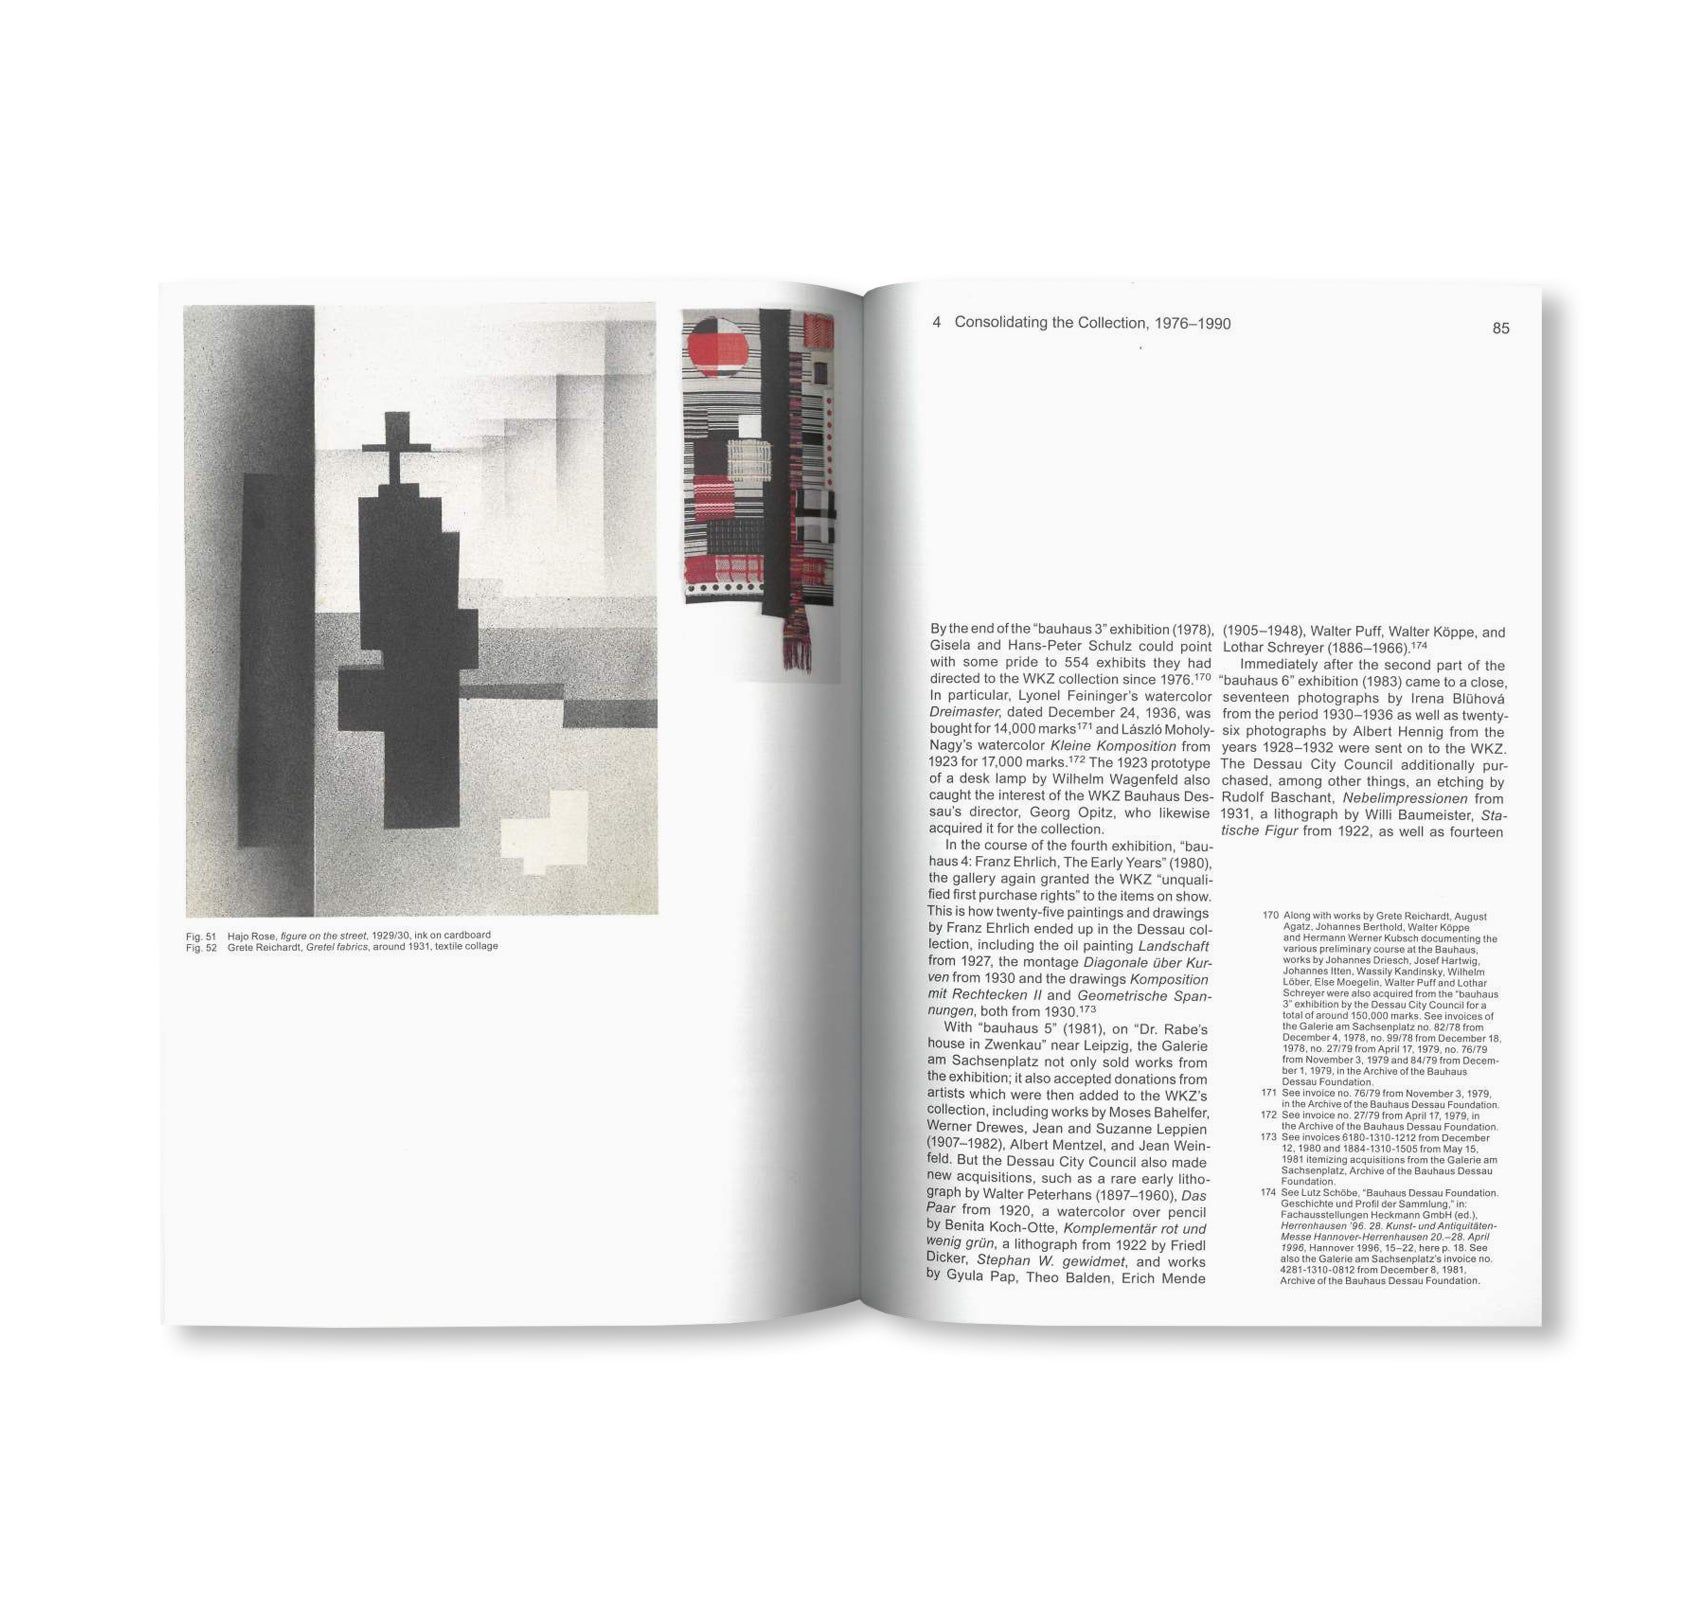 THE PROGRESSIVE HERITAGE OF THE BAUHAUS - ON THE ORIGINS OF AN EAST GERMAN BAUHAUS COLLECTION / Edition Bauhaus 54 by Stiftung Bauhaus Dessau